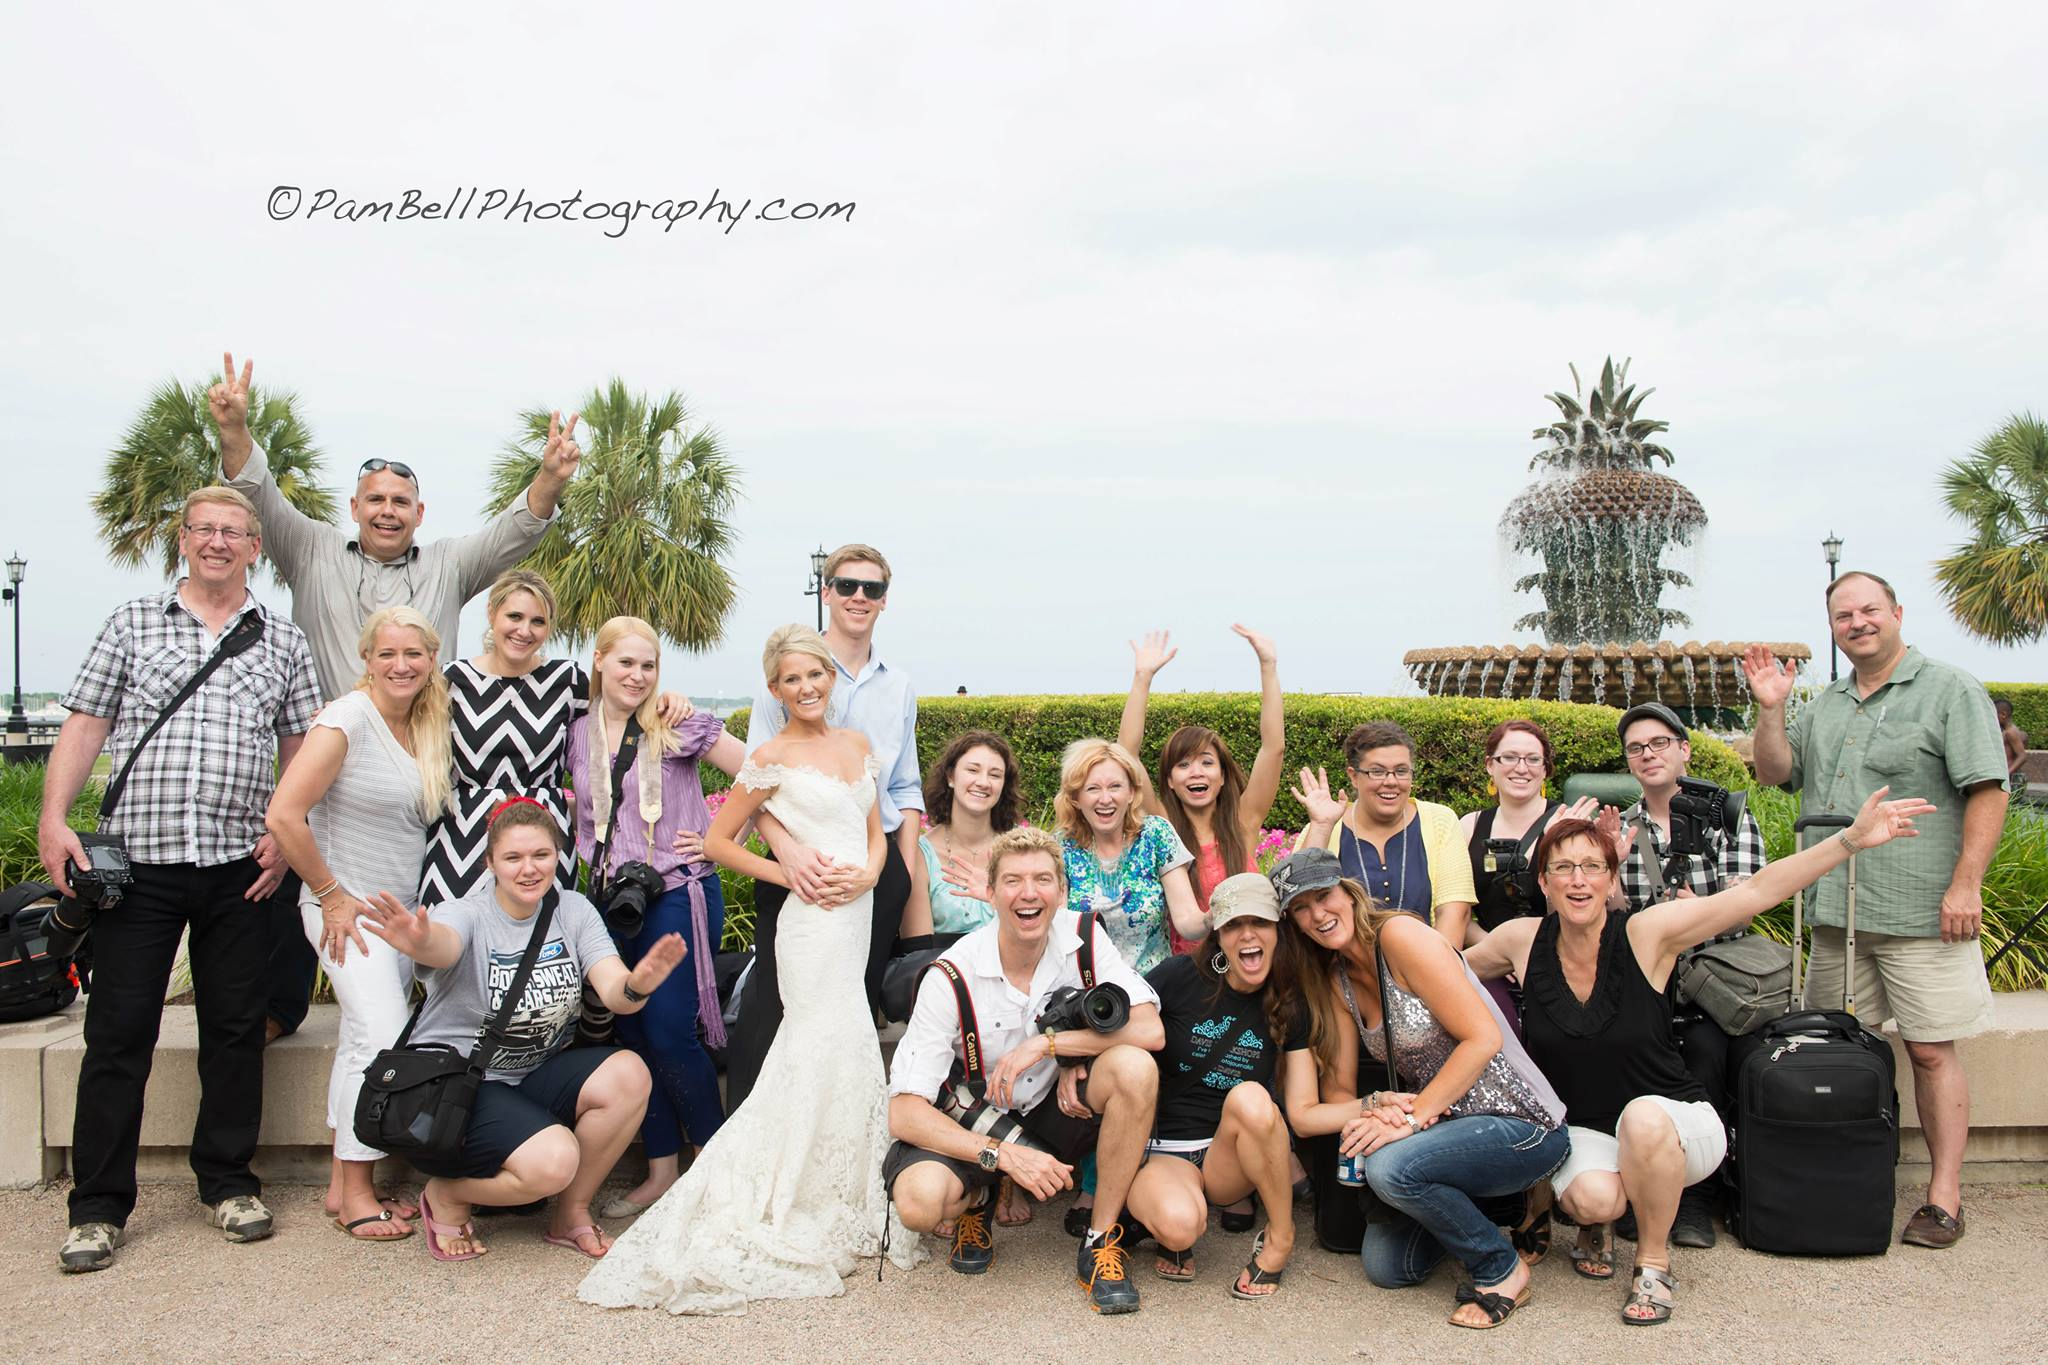 Workshop photographers - We had fun and are excited about life! :)  Photo by Pam Bell Photography